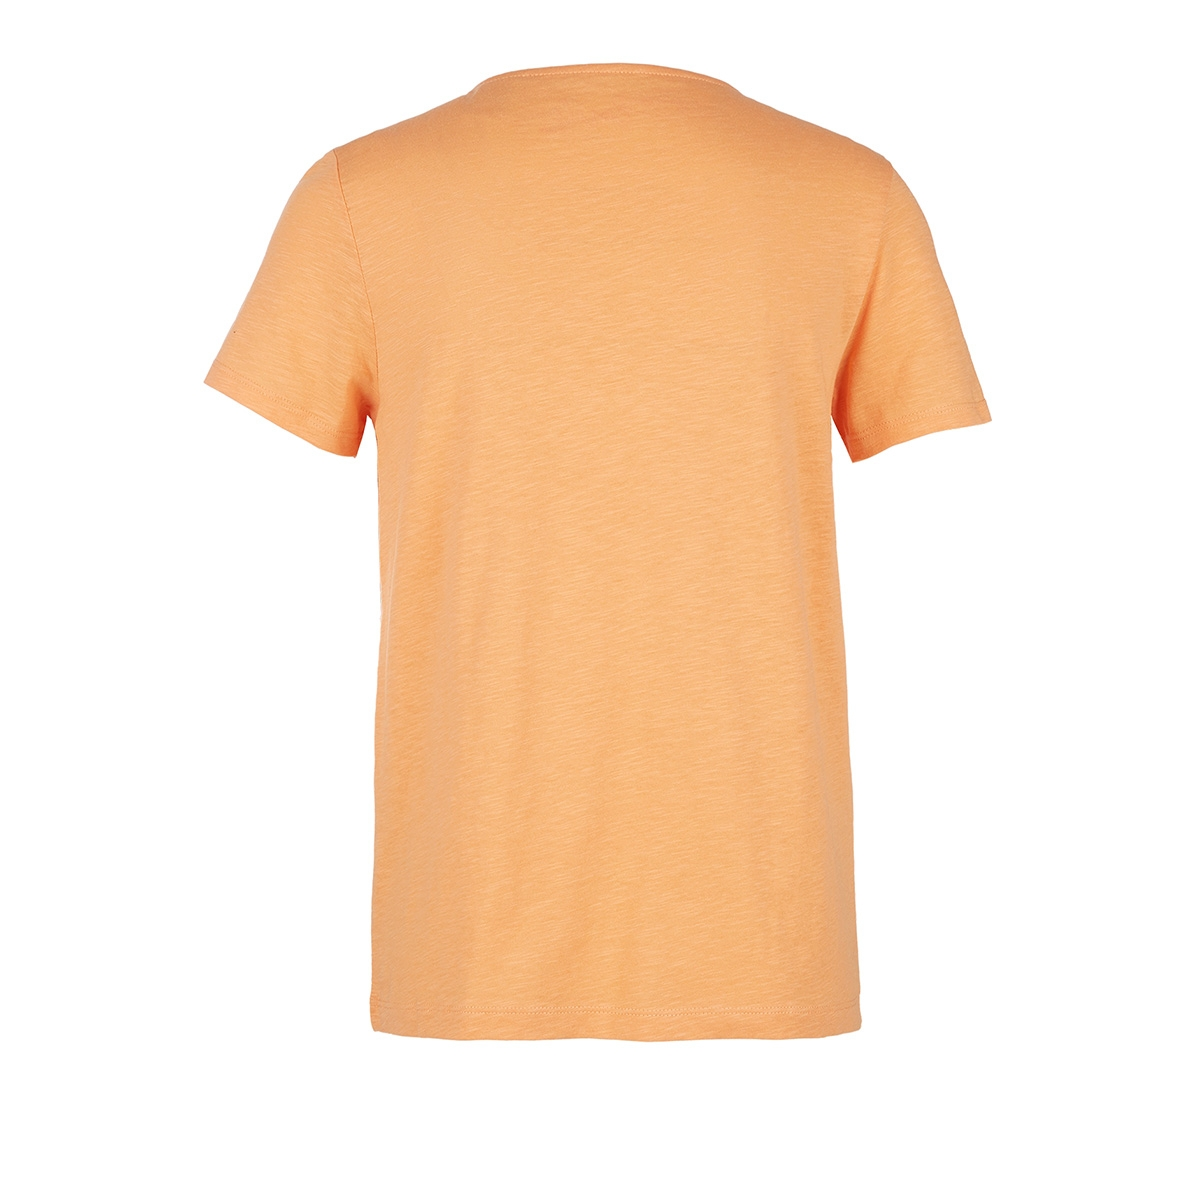 t shirt 14005325021 s.oliver t-shirt 2123